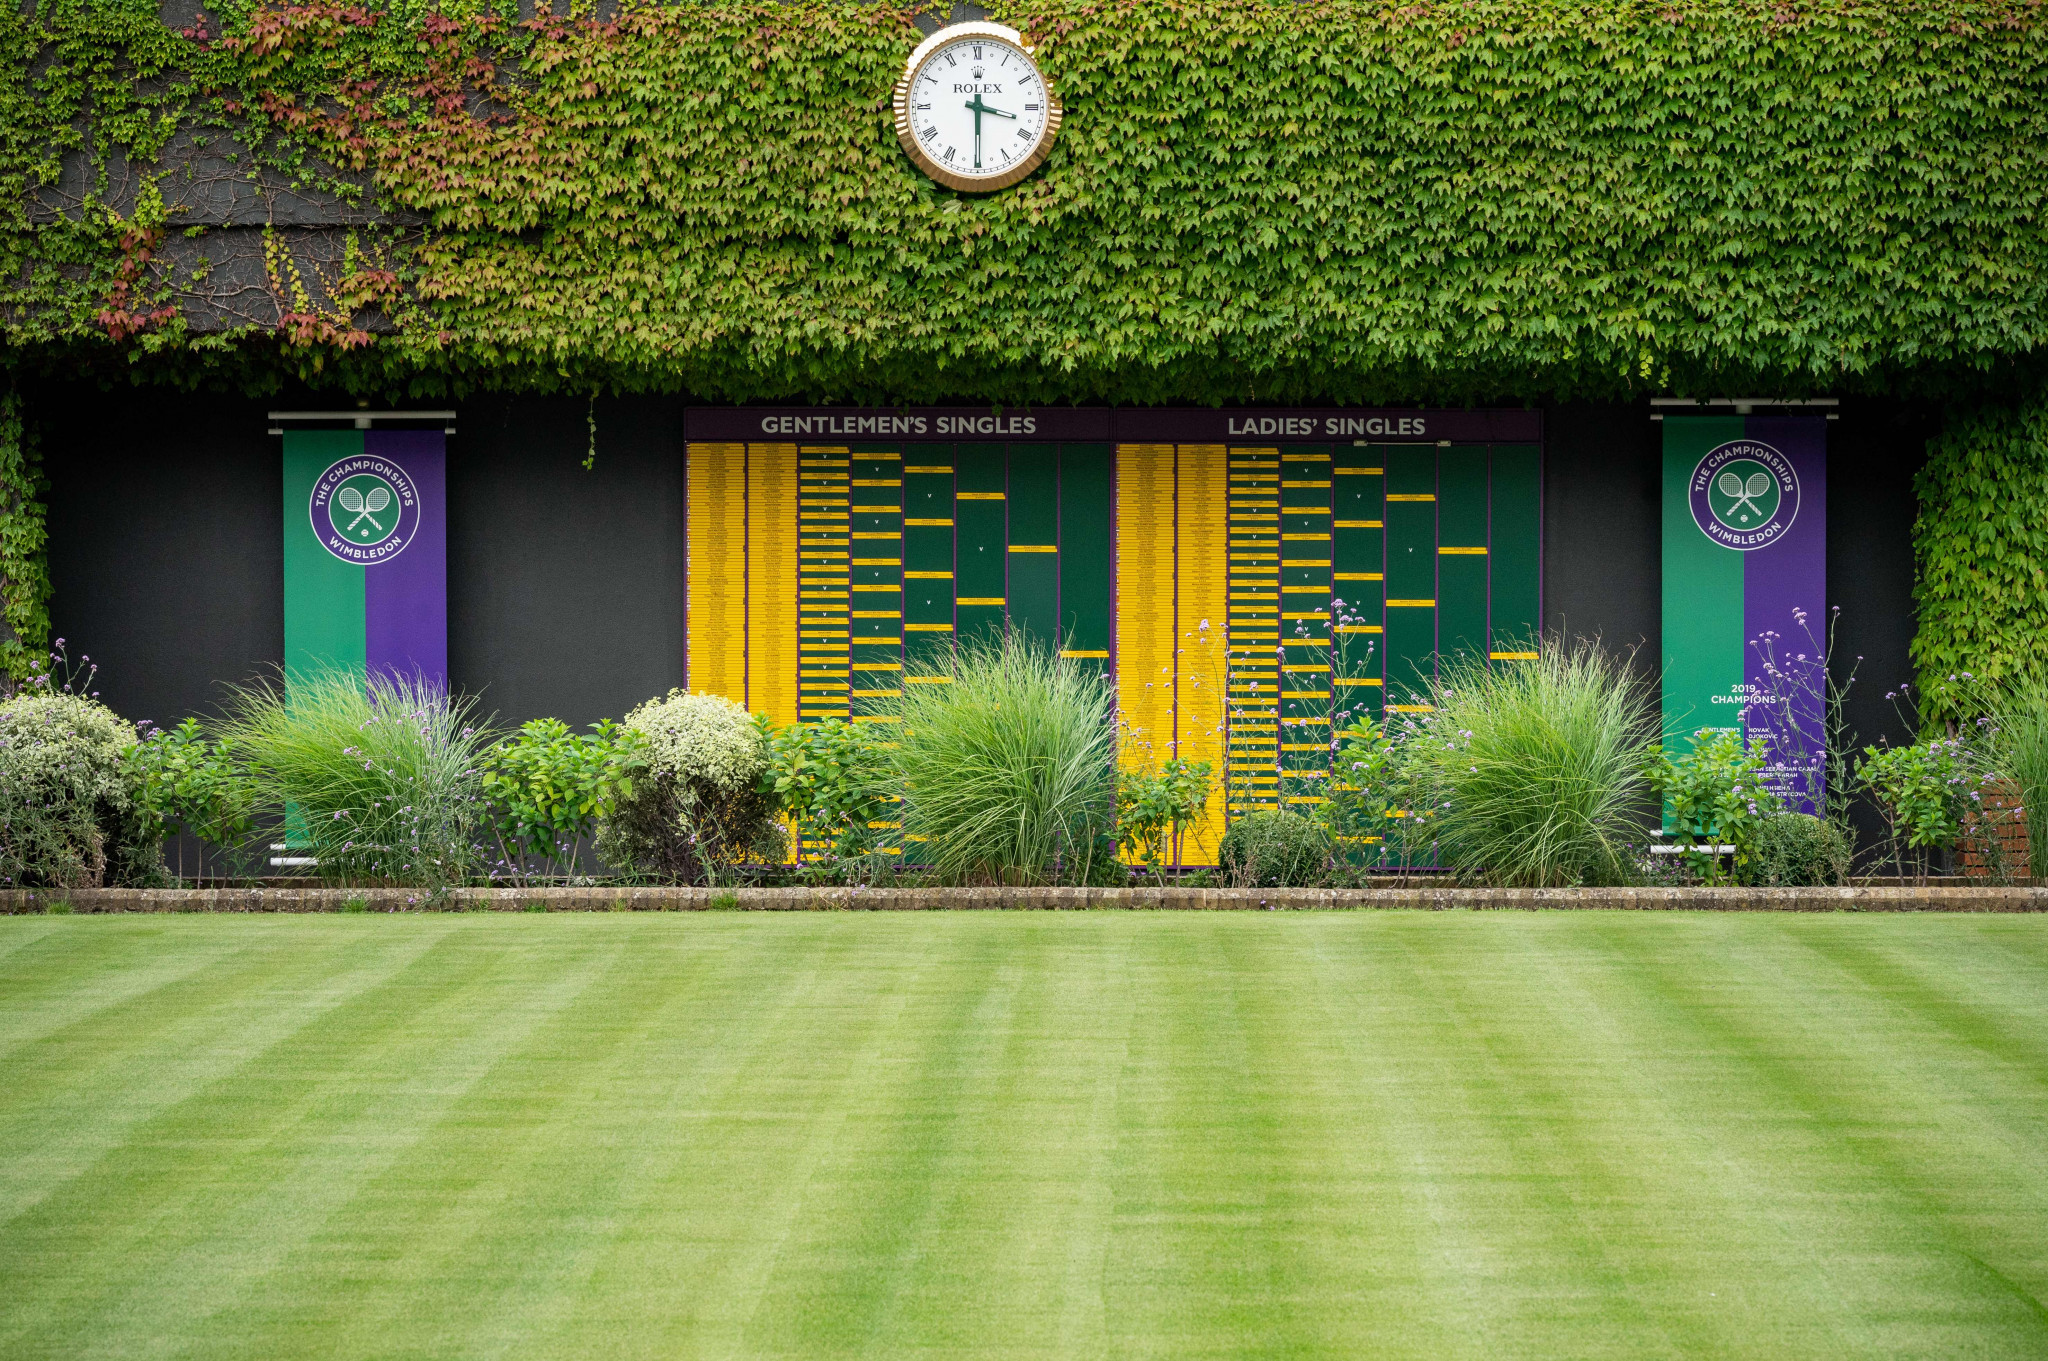 The AELTC are expected to receive a large insurance payout after the cancellation of this year's Wimbledon ©Getty Images